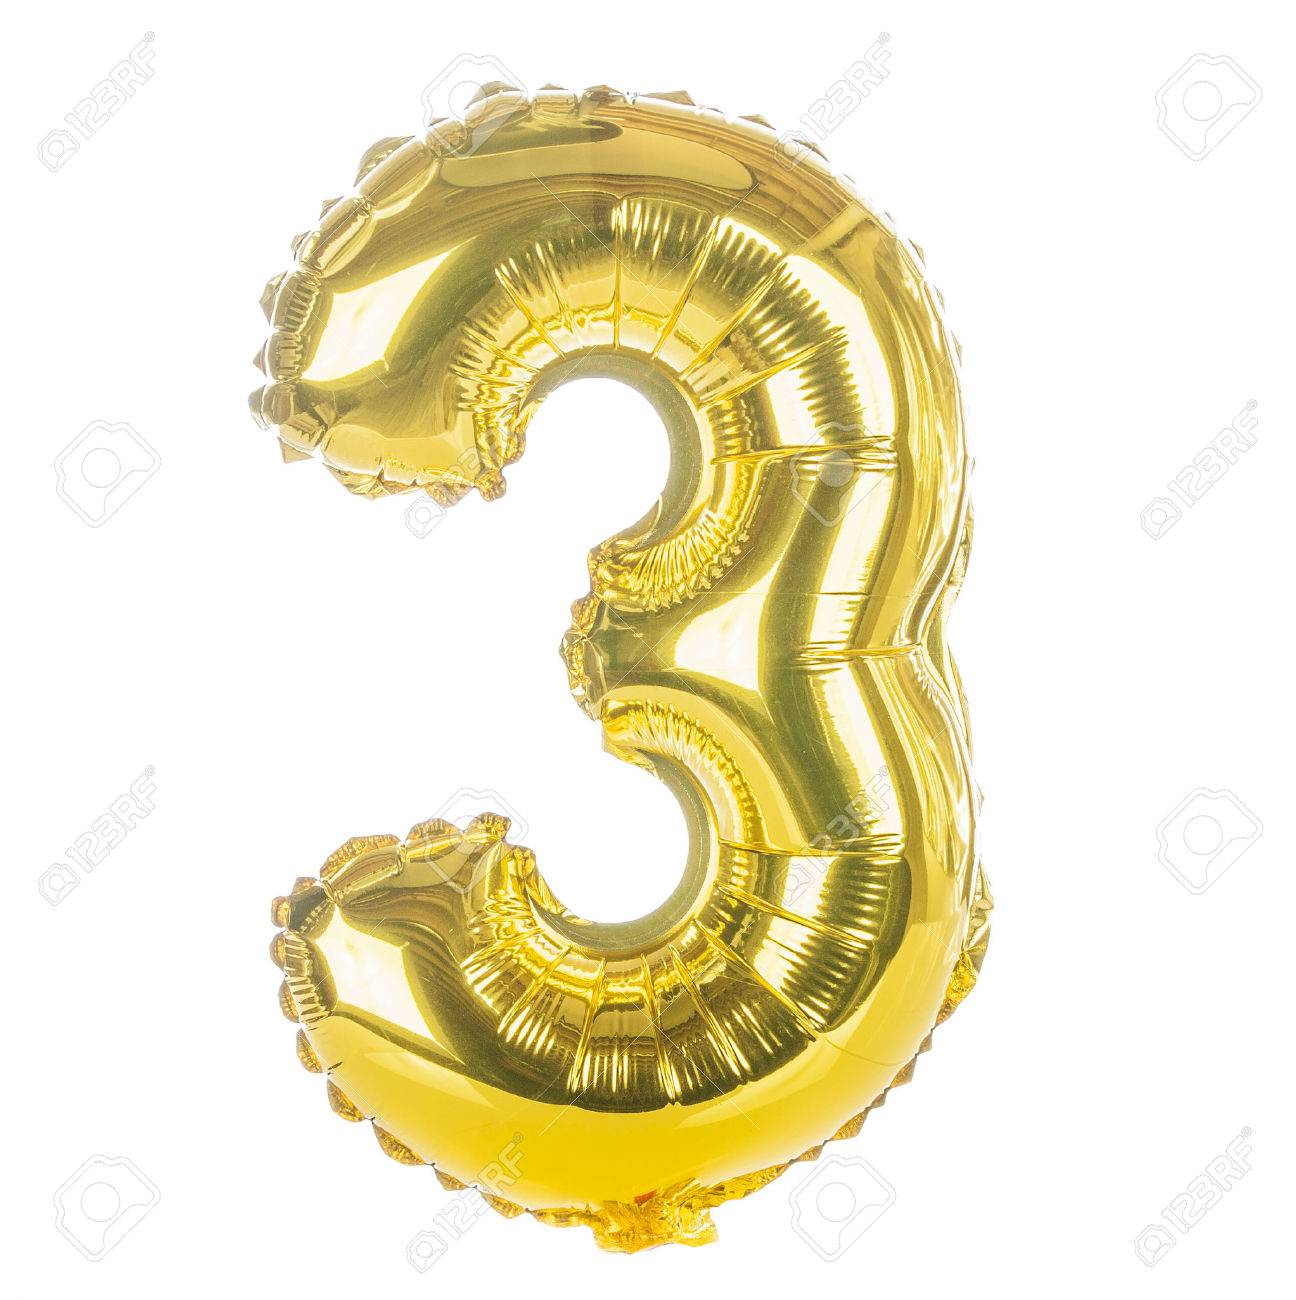 Gold balloon font part of full set of numbers, number three,3 - 24069614